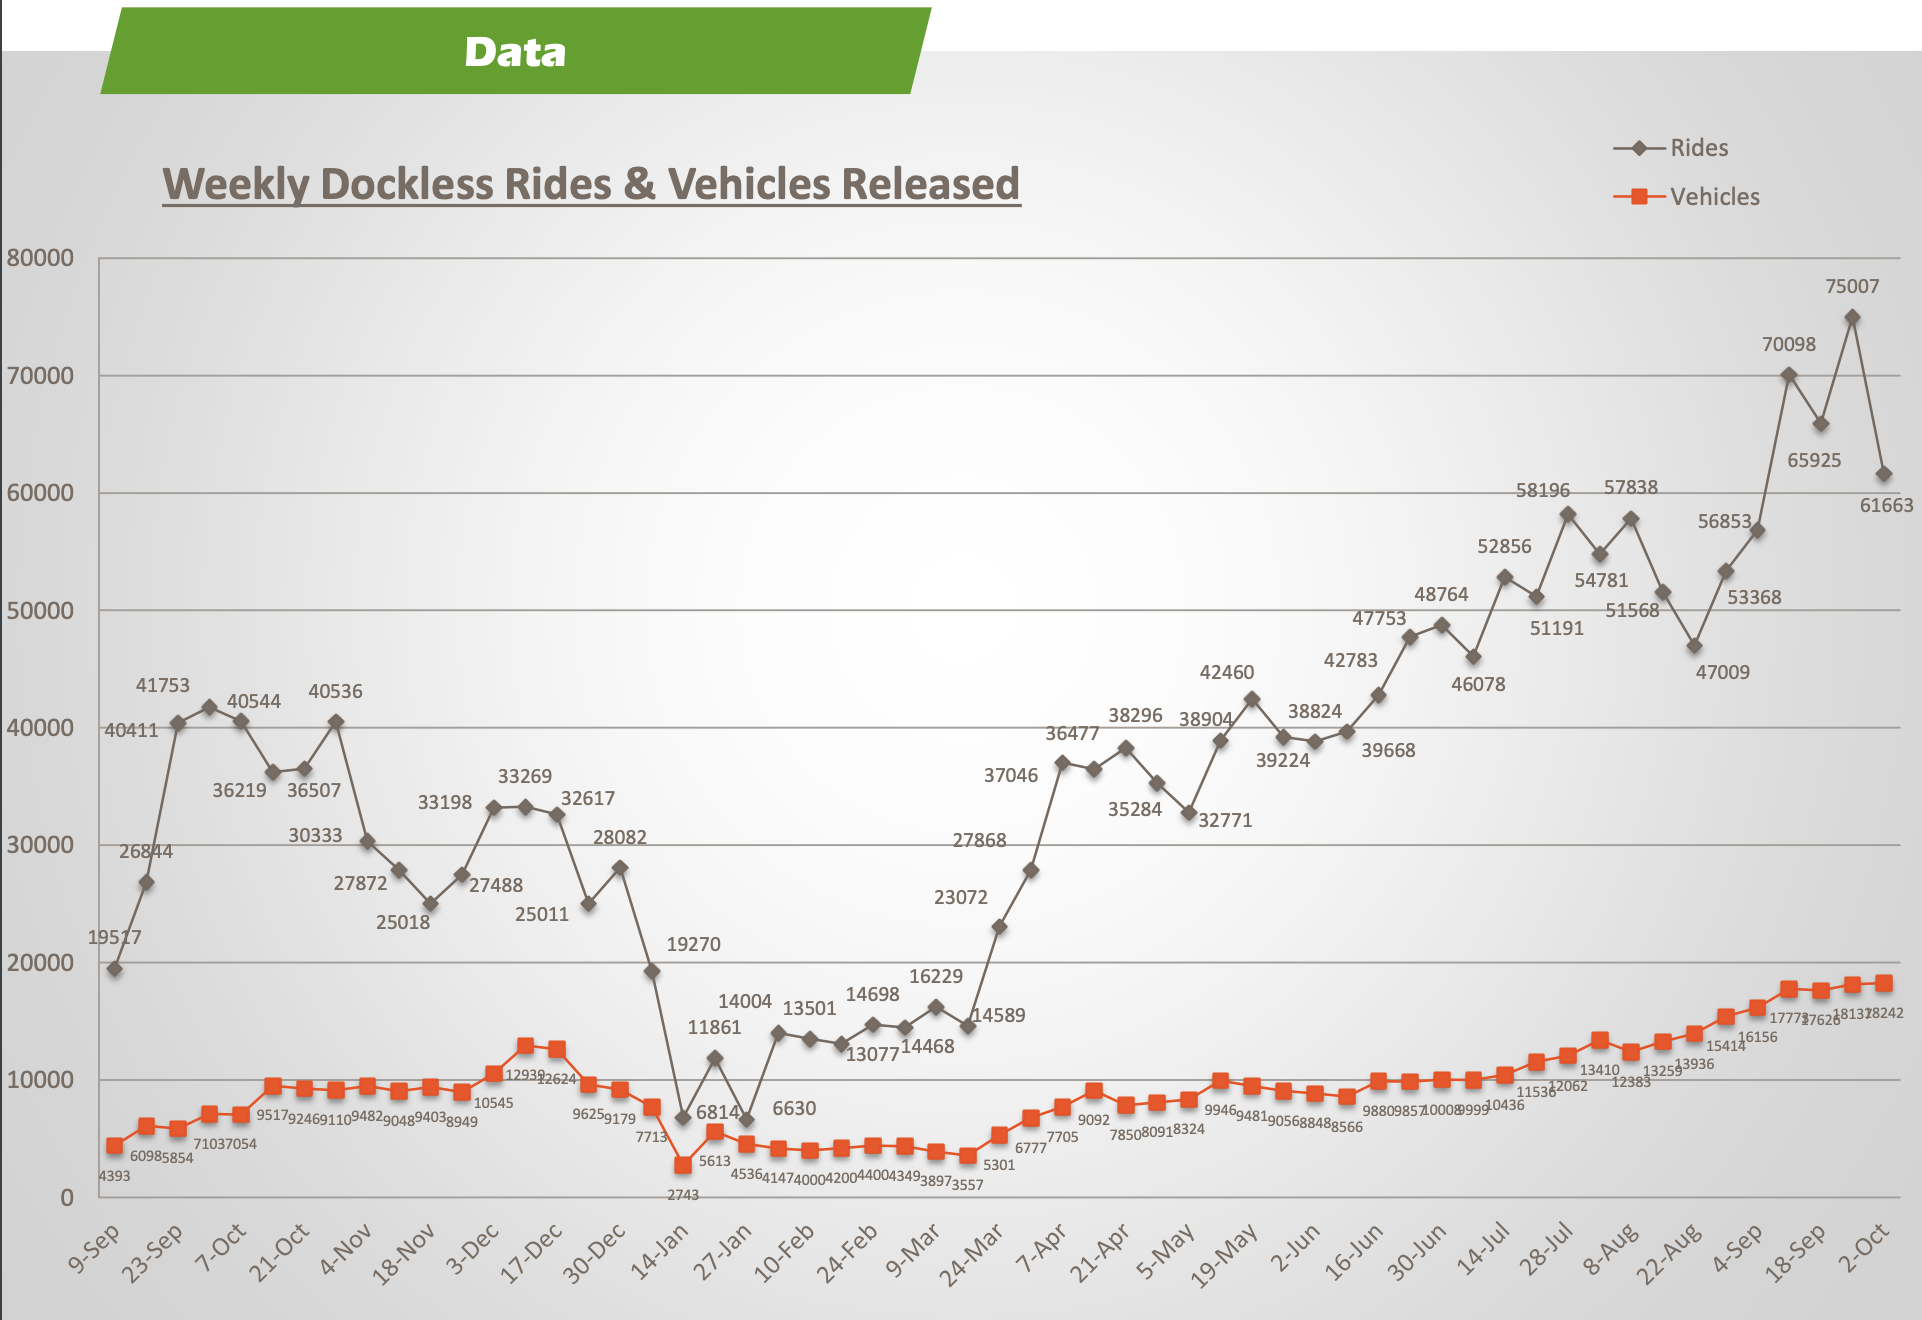 Annual chart of dockless vehicle deployment and ridership